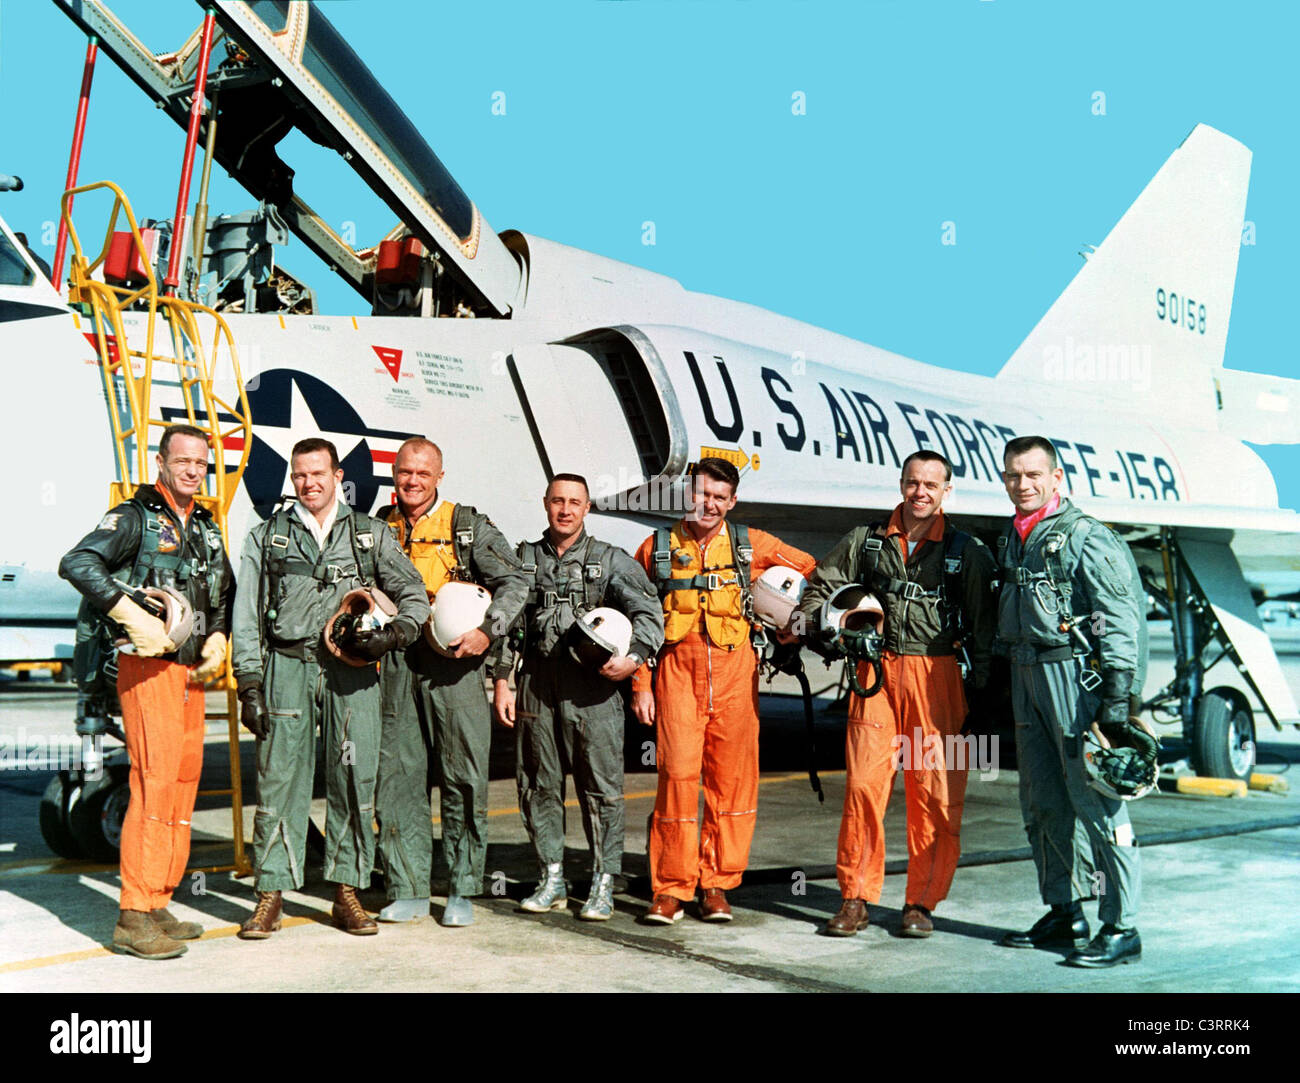 The original seven Mercury astronauts during training at NASA Langley Research Center Project Mercury. - Stock Image